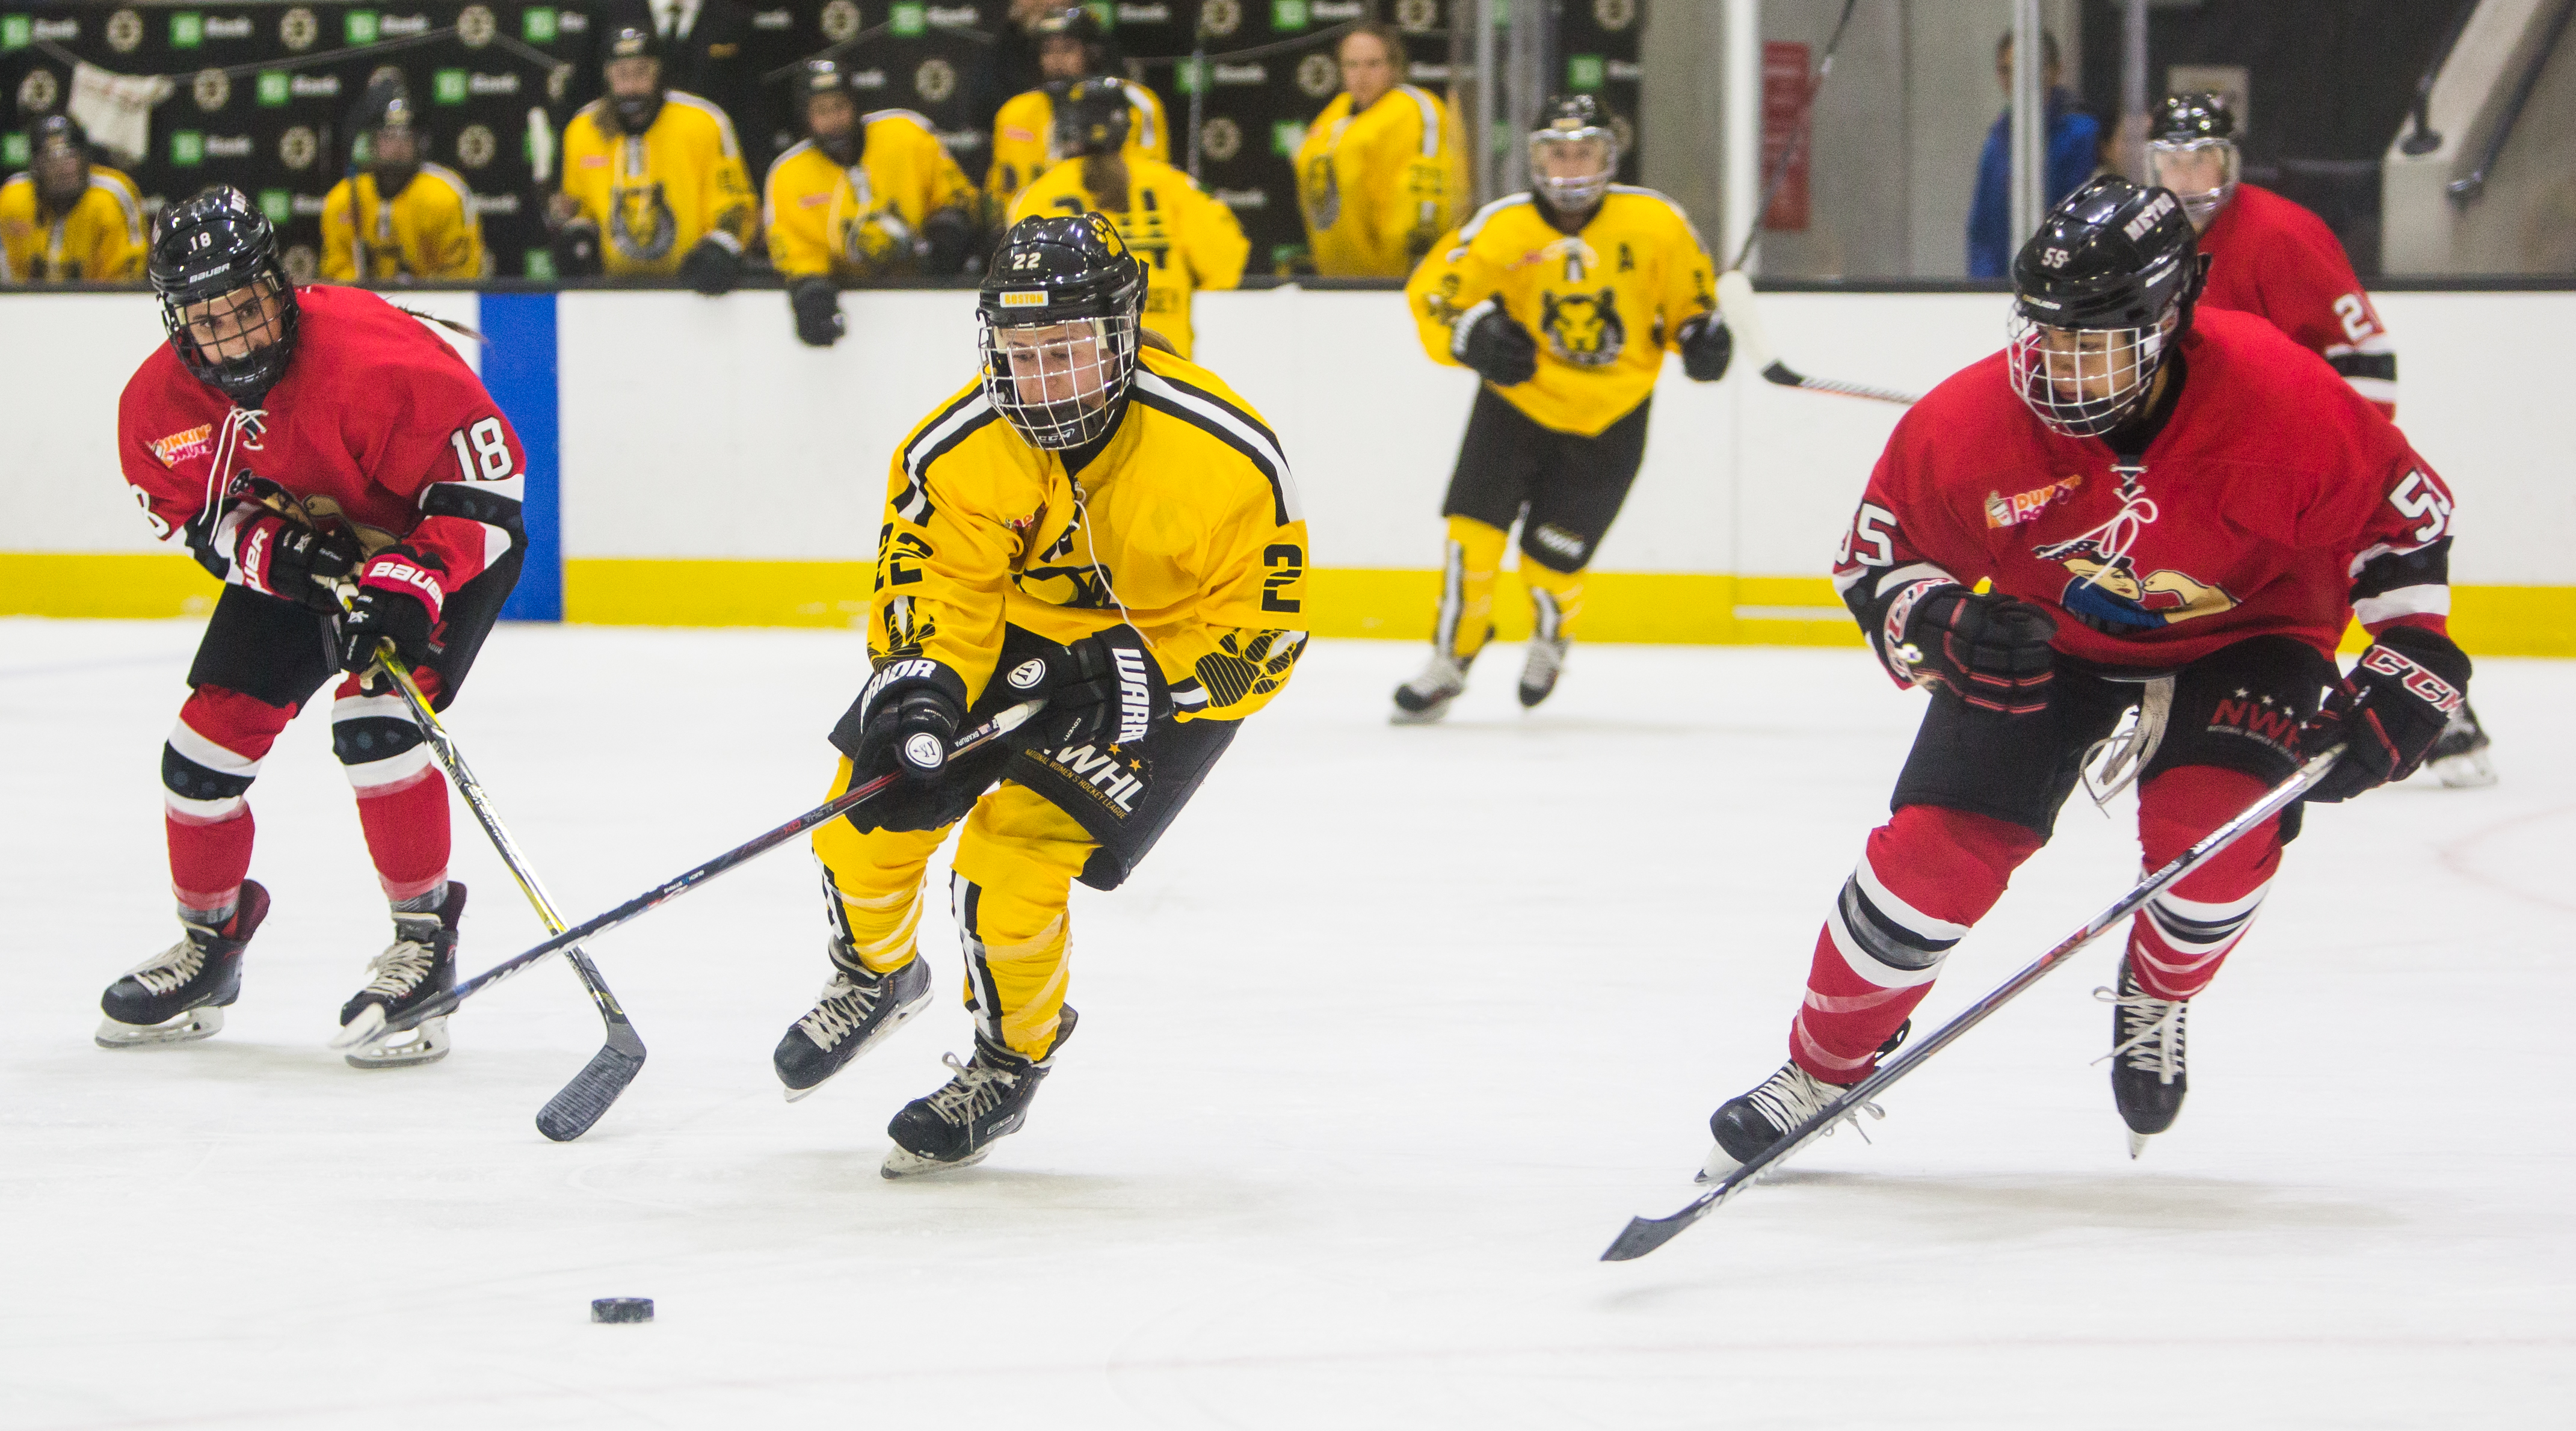 a2b29dc0ad4 What each NWHL team needs to work on - The Ice Garden